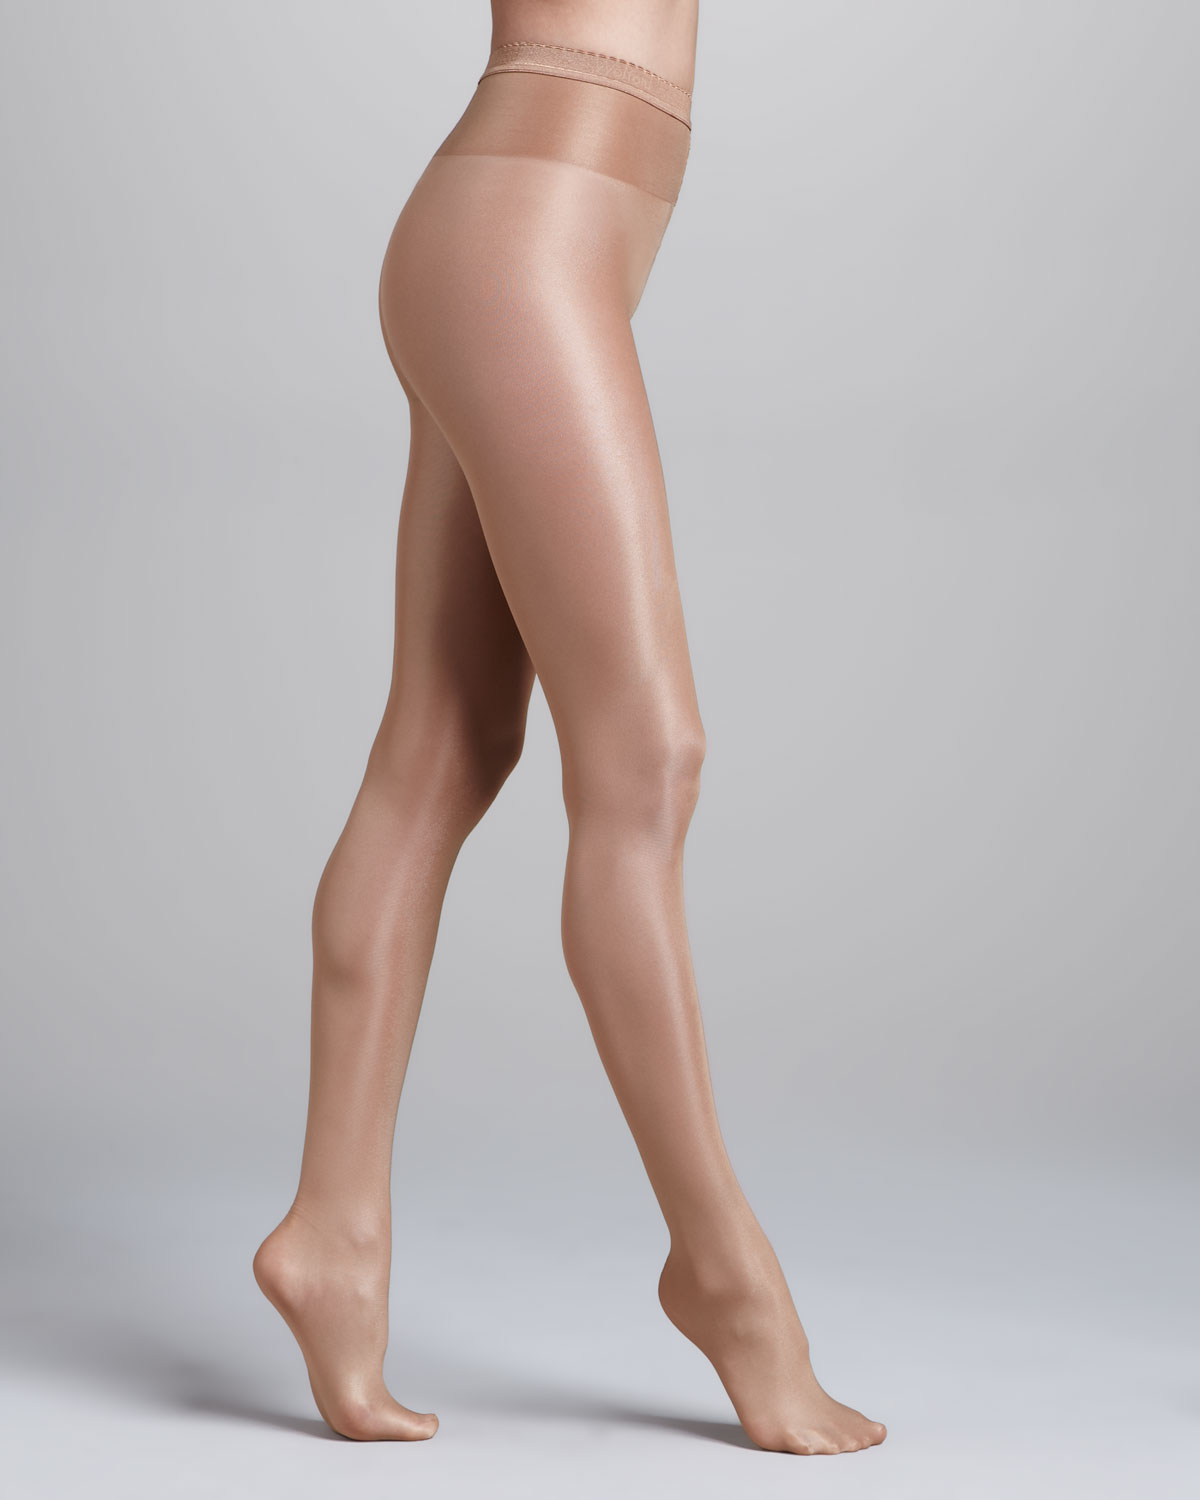 Have wolford pantyhose photo